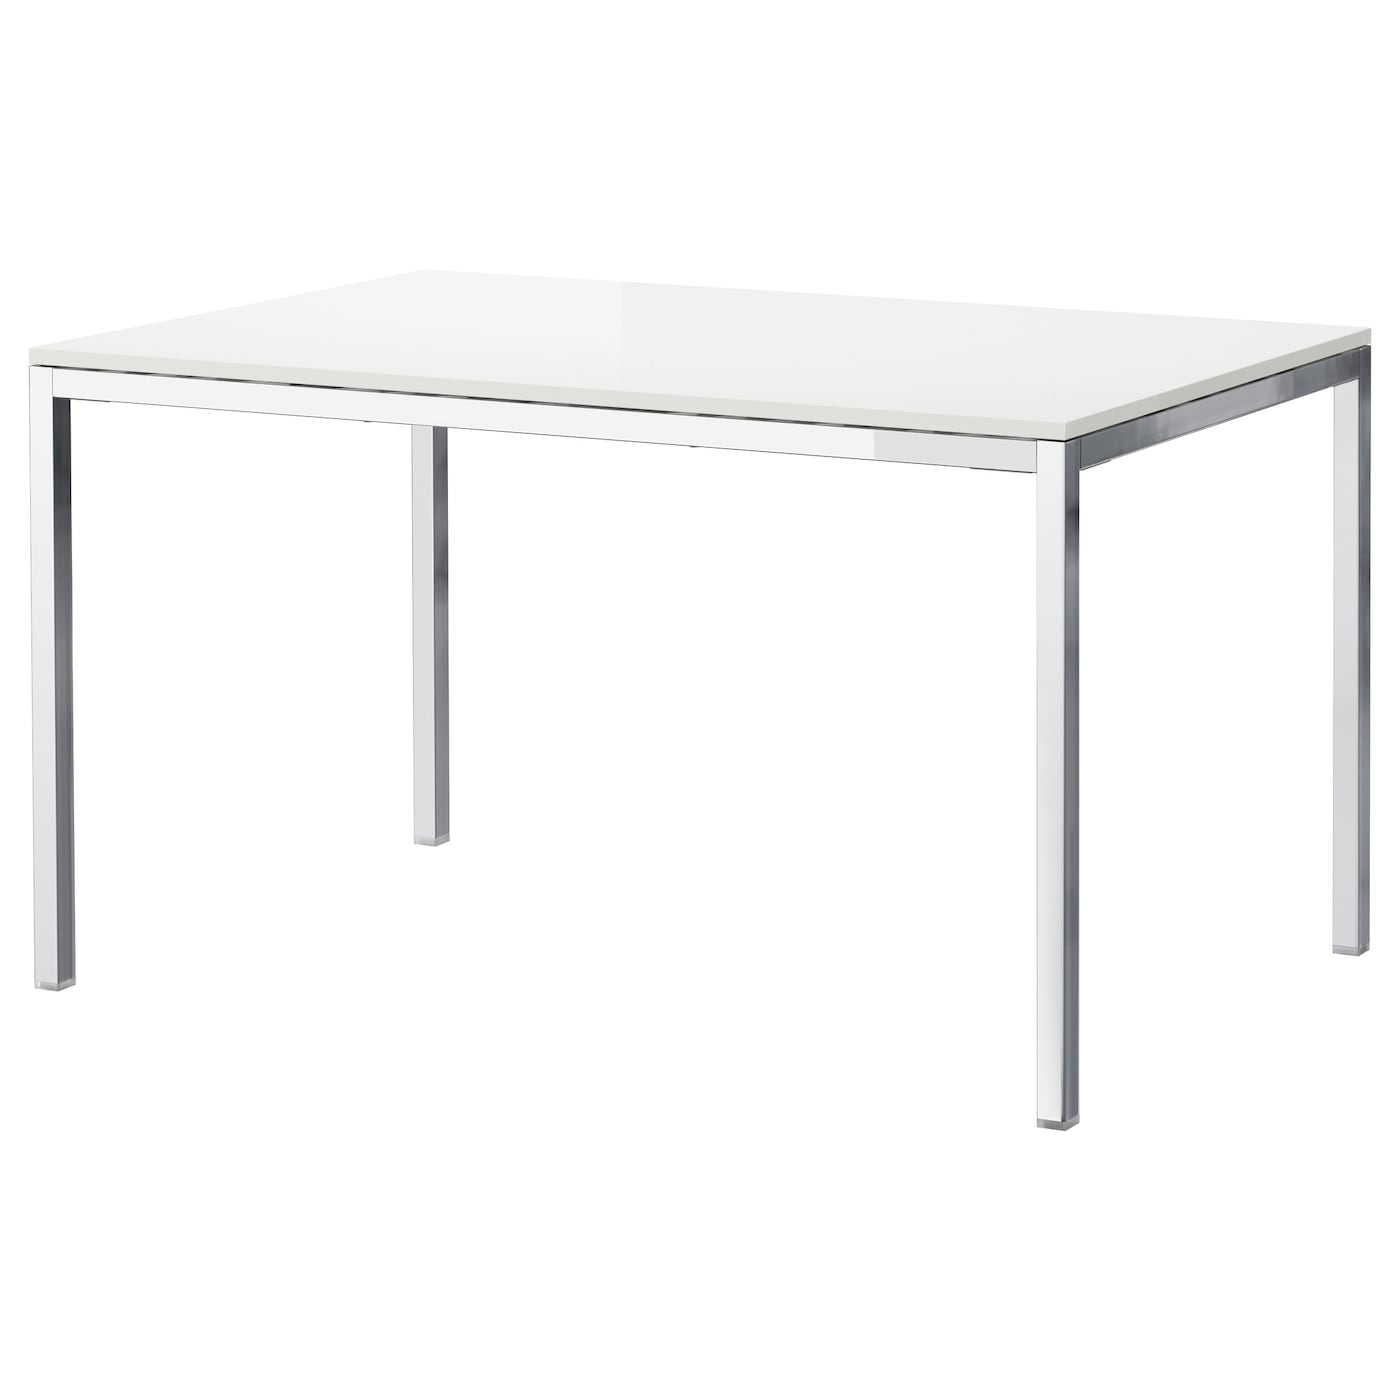 TORSBY Table Chrome-plated/high-gloss white 135x85 cm - IKEA